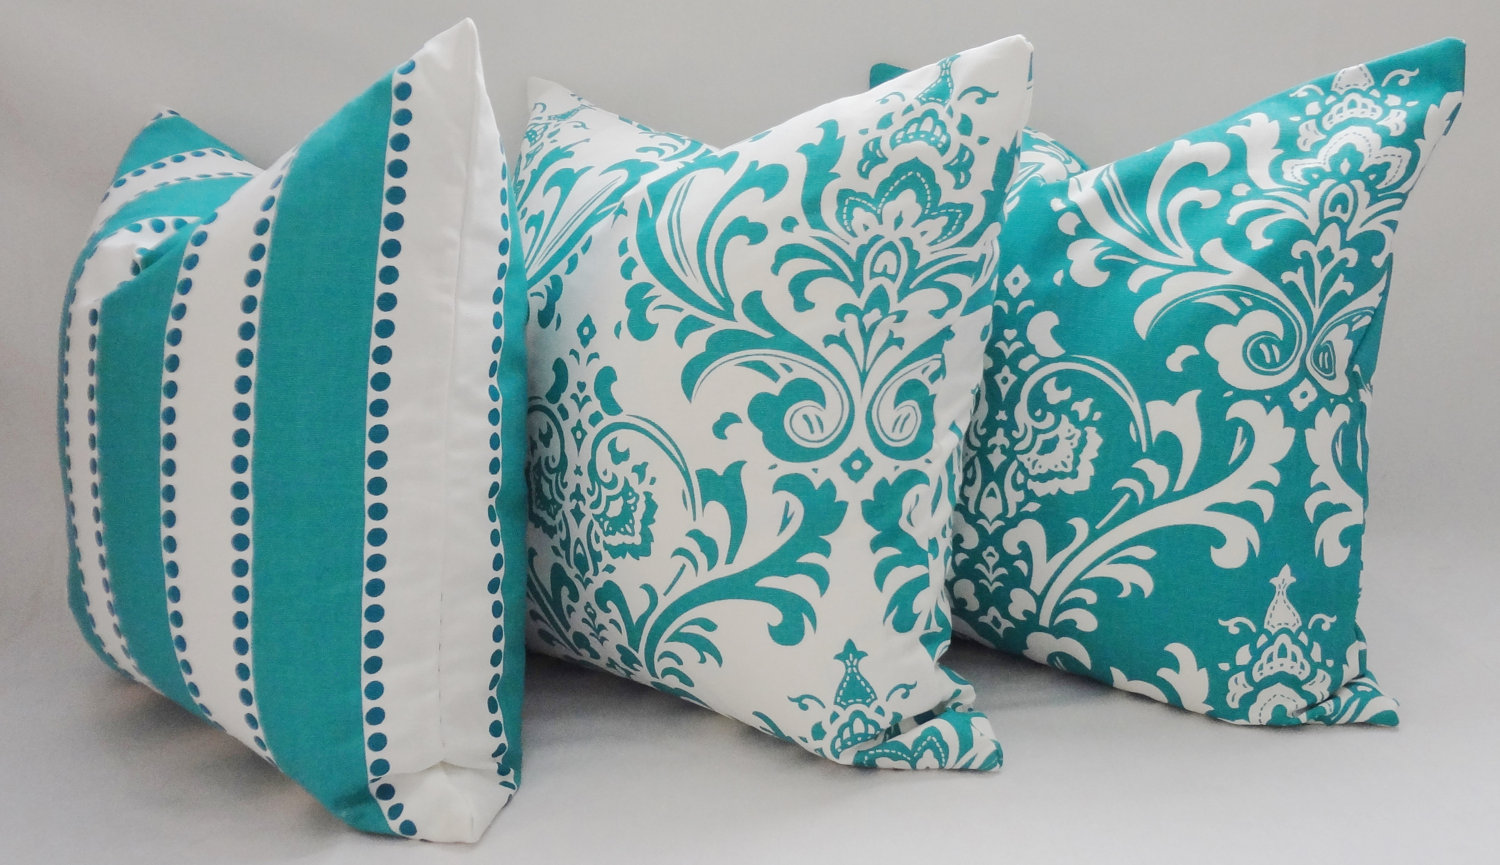 Best Pattern Of Cheap Decorative Pillows For Bed Or Sofas Furniture Ideas